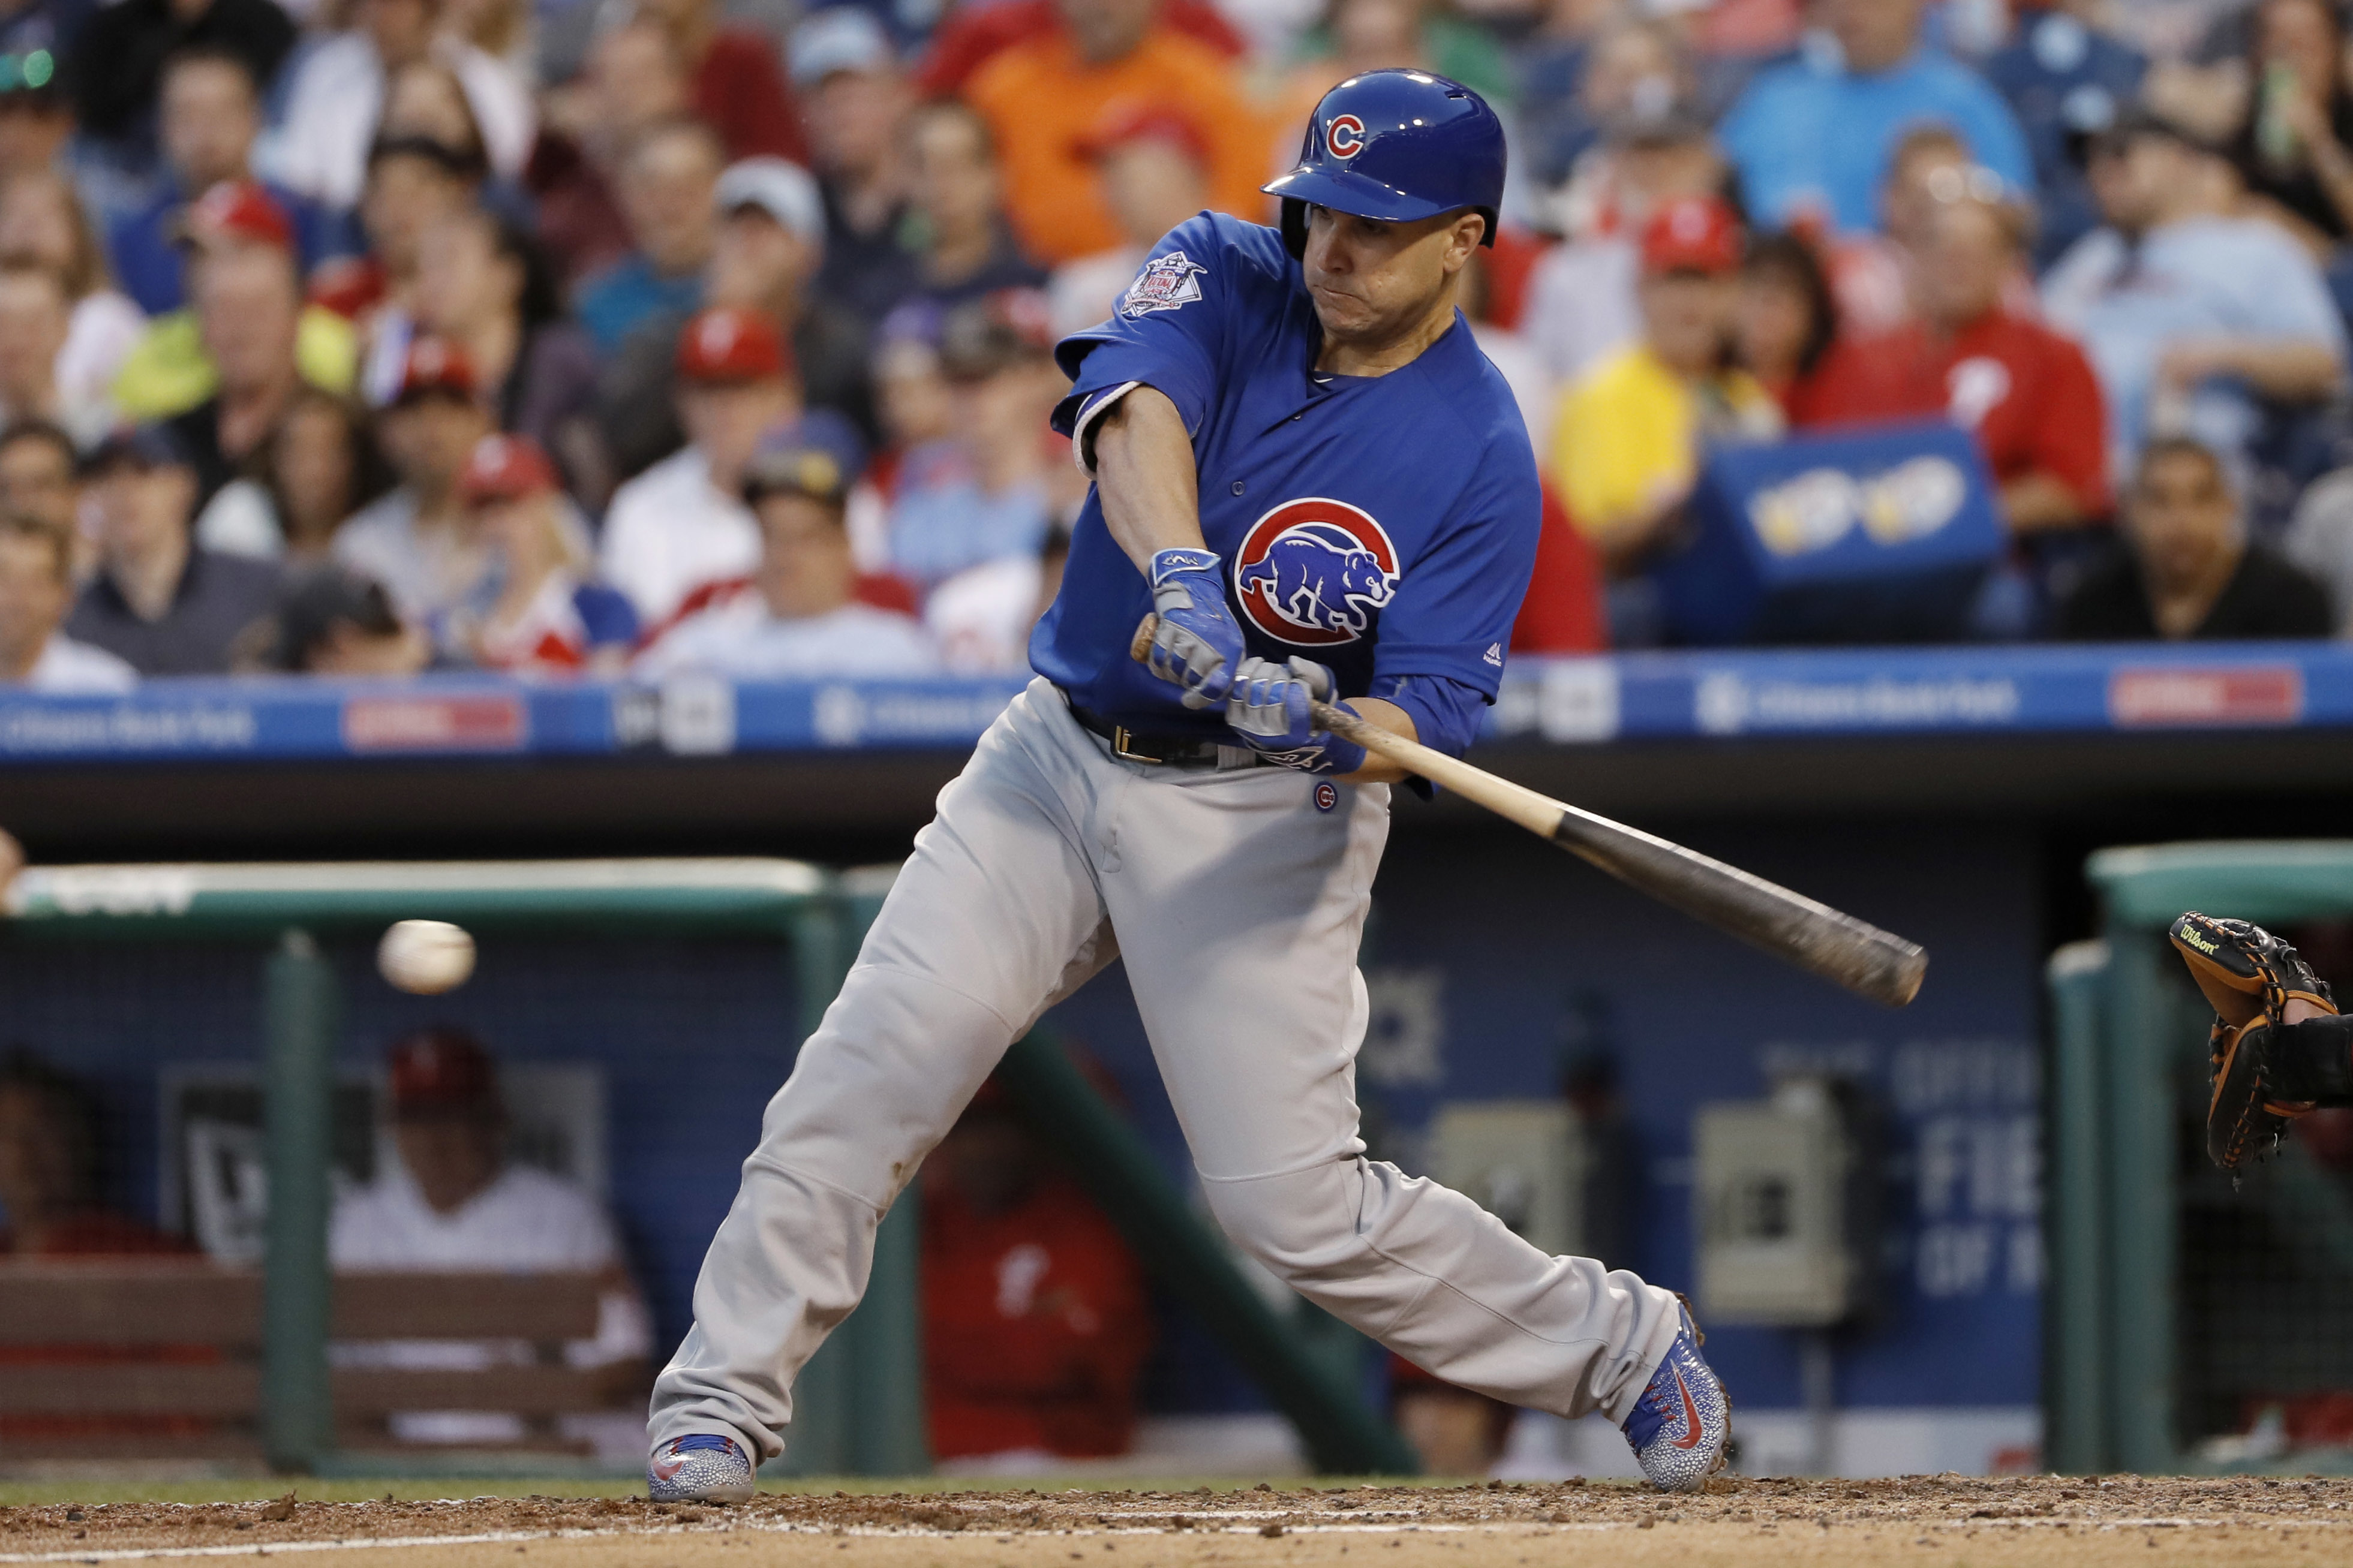 Chicago Cubs' Miguel Montero hits into a run-scoring double play during the fifth inning of a baseball game against the Philadelphia Phillies, Tuesday, June 7, 2016, in Philadelphia. (AP Photo/Matt Slocum)